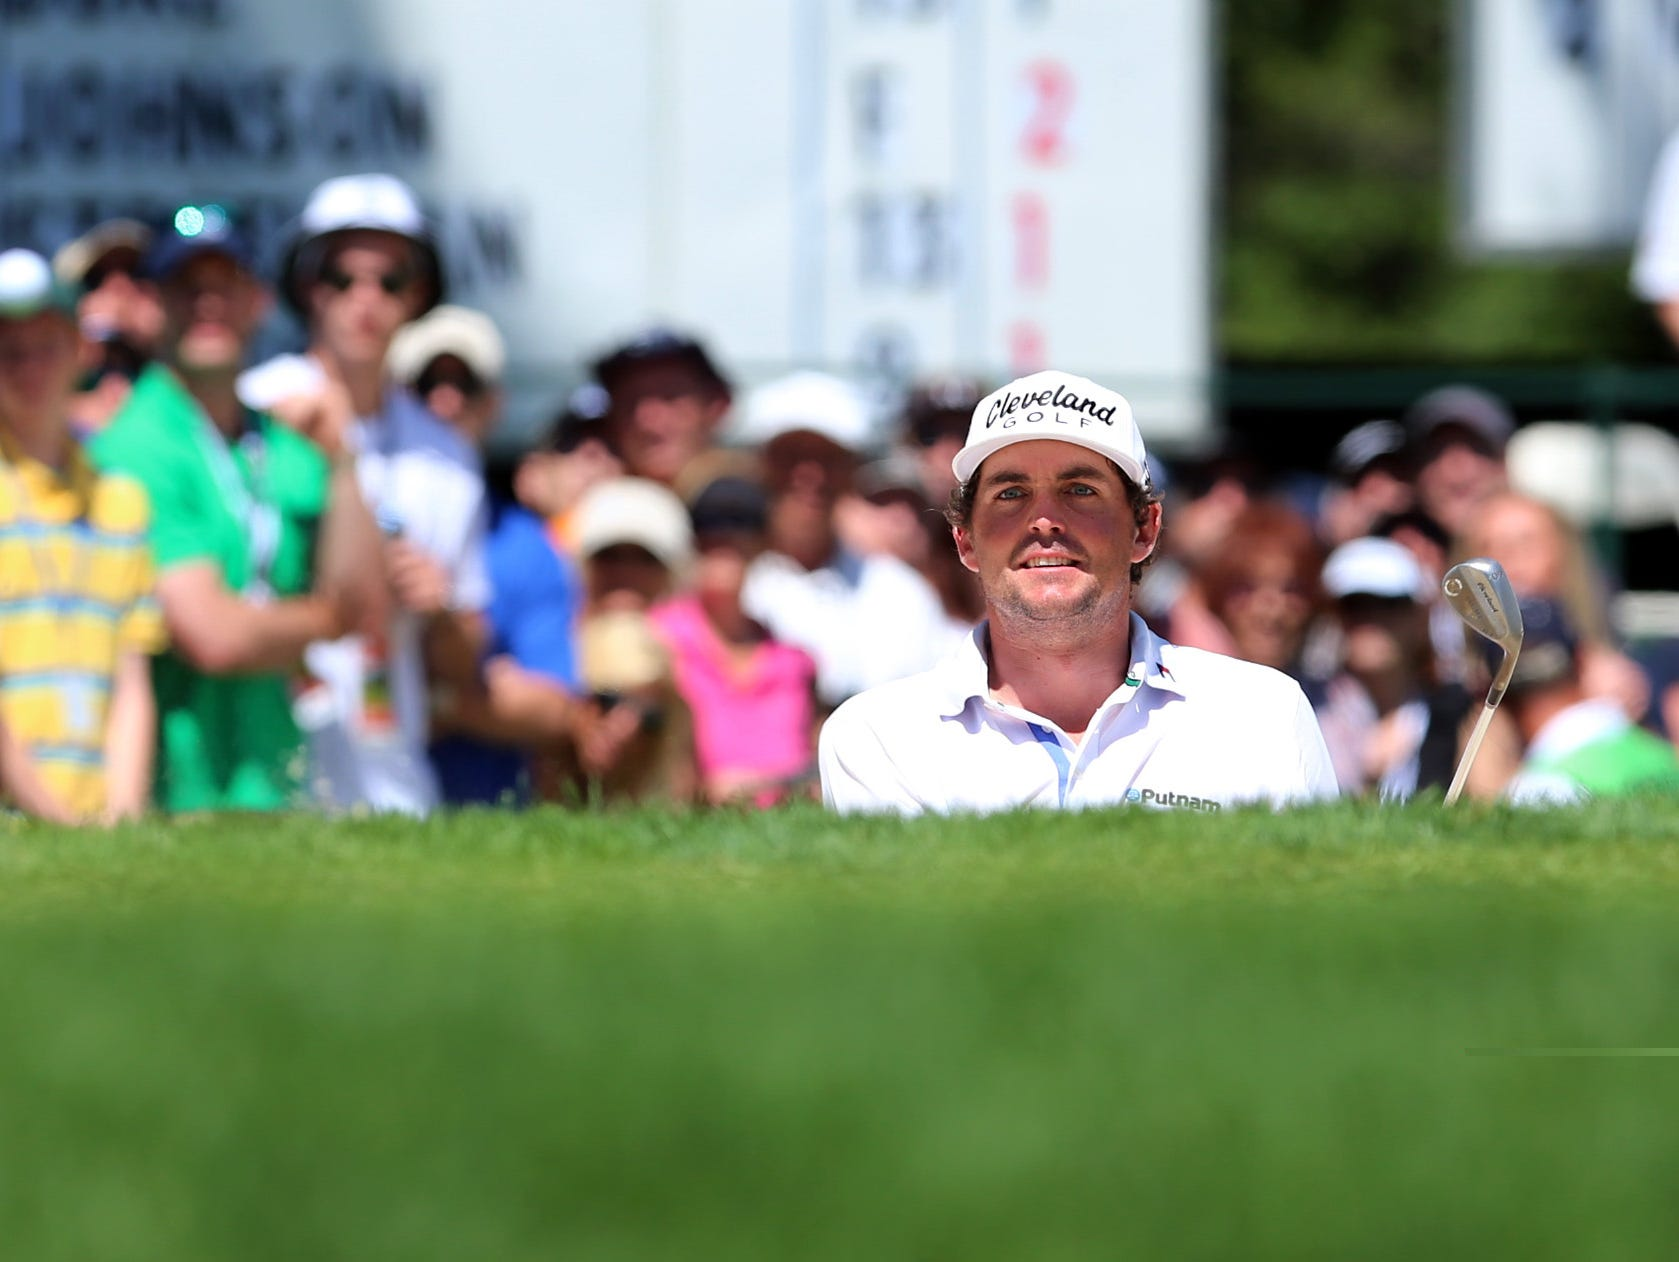 Keegan Bradley watches his bunker shot on the 8th green.